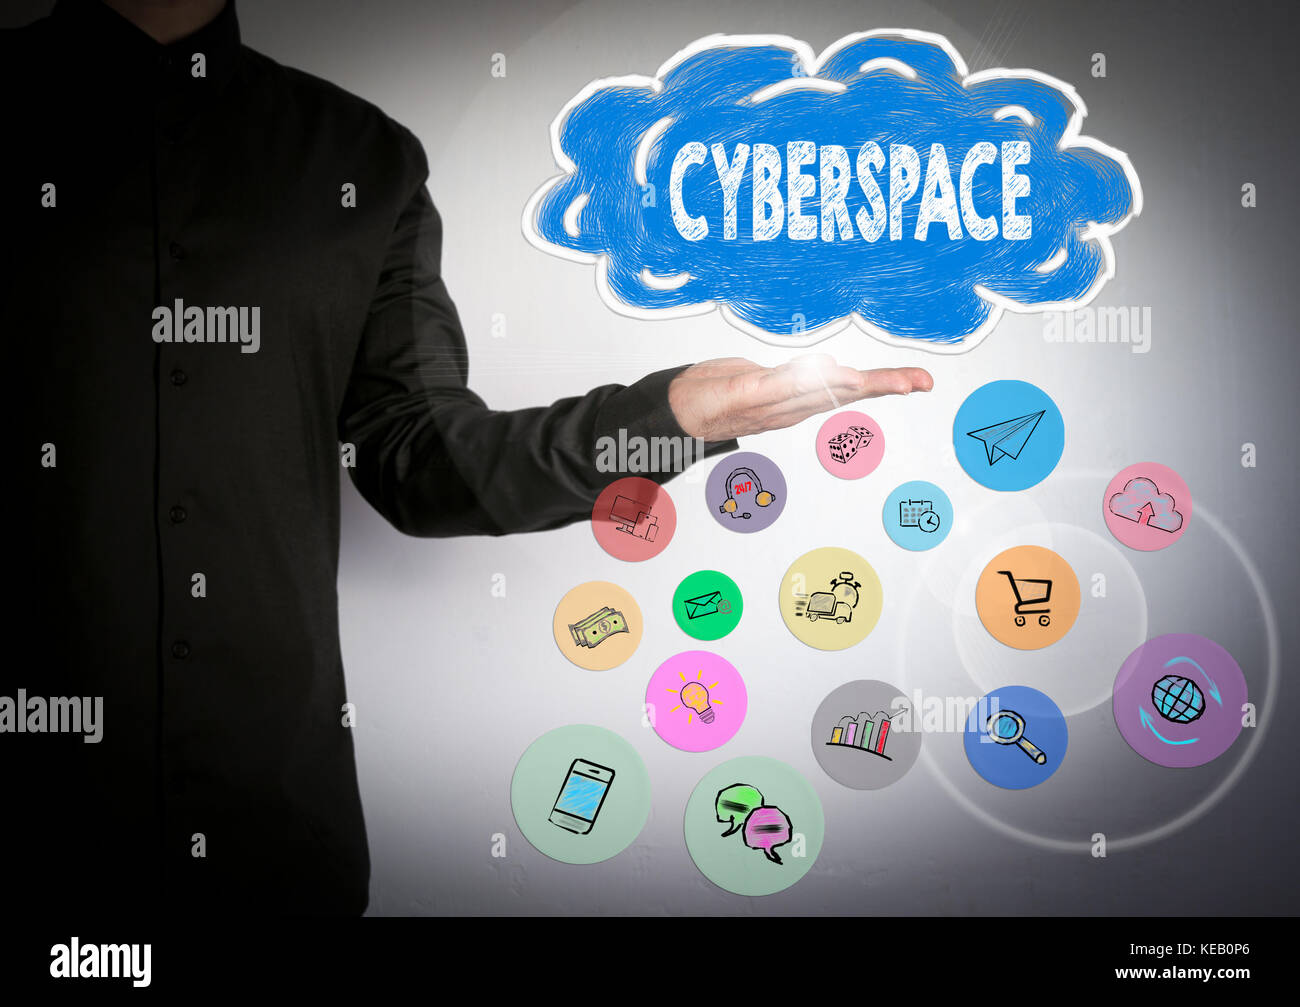 Cyberspace concept. Cloud and and icons. Business background - Stock Image